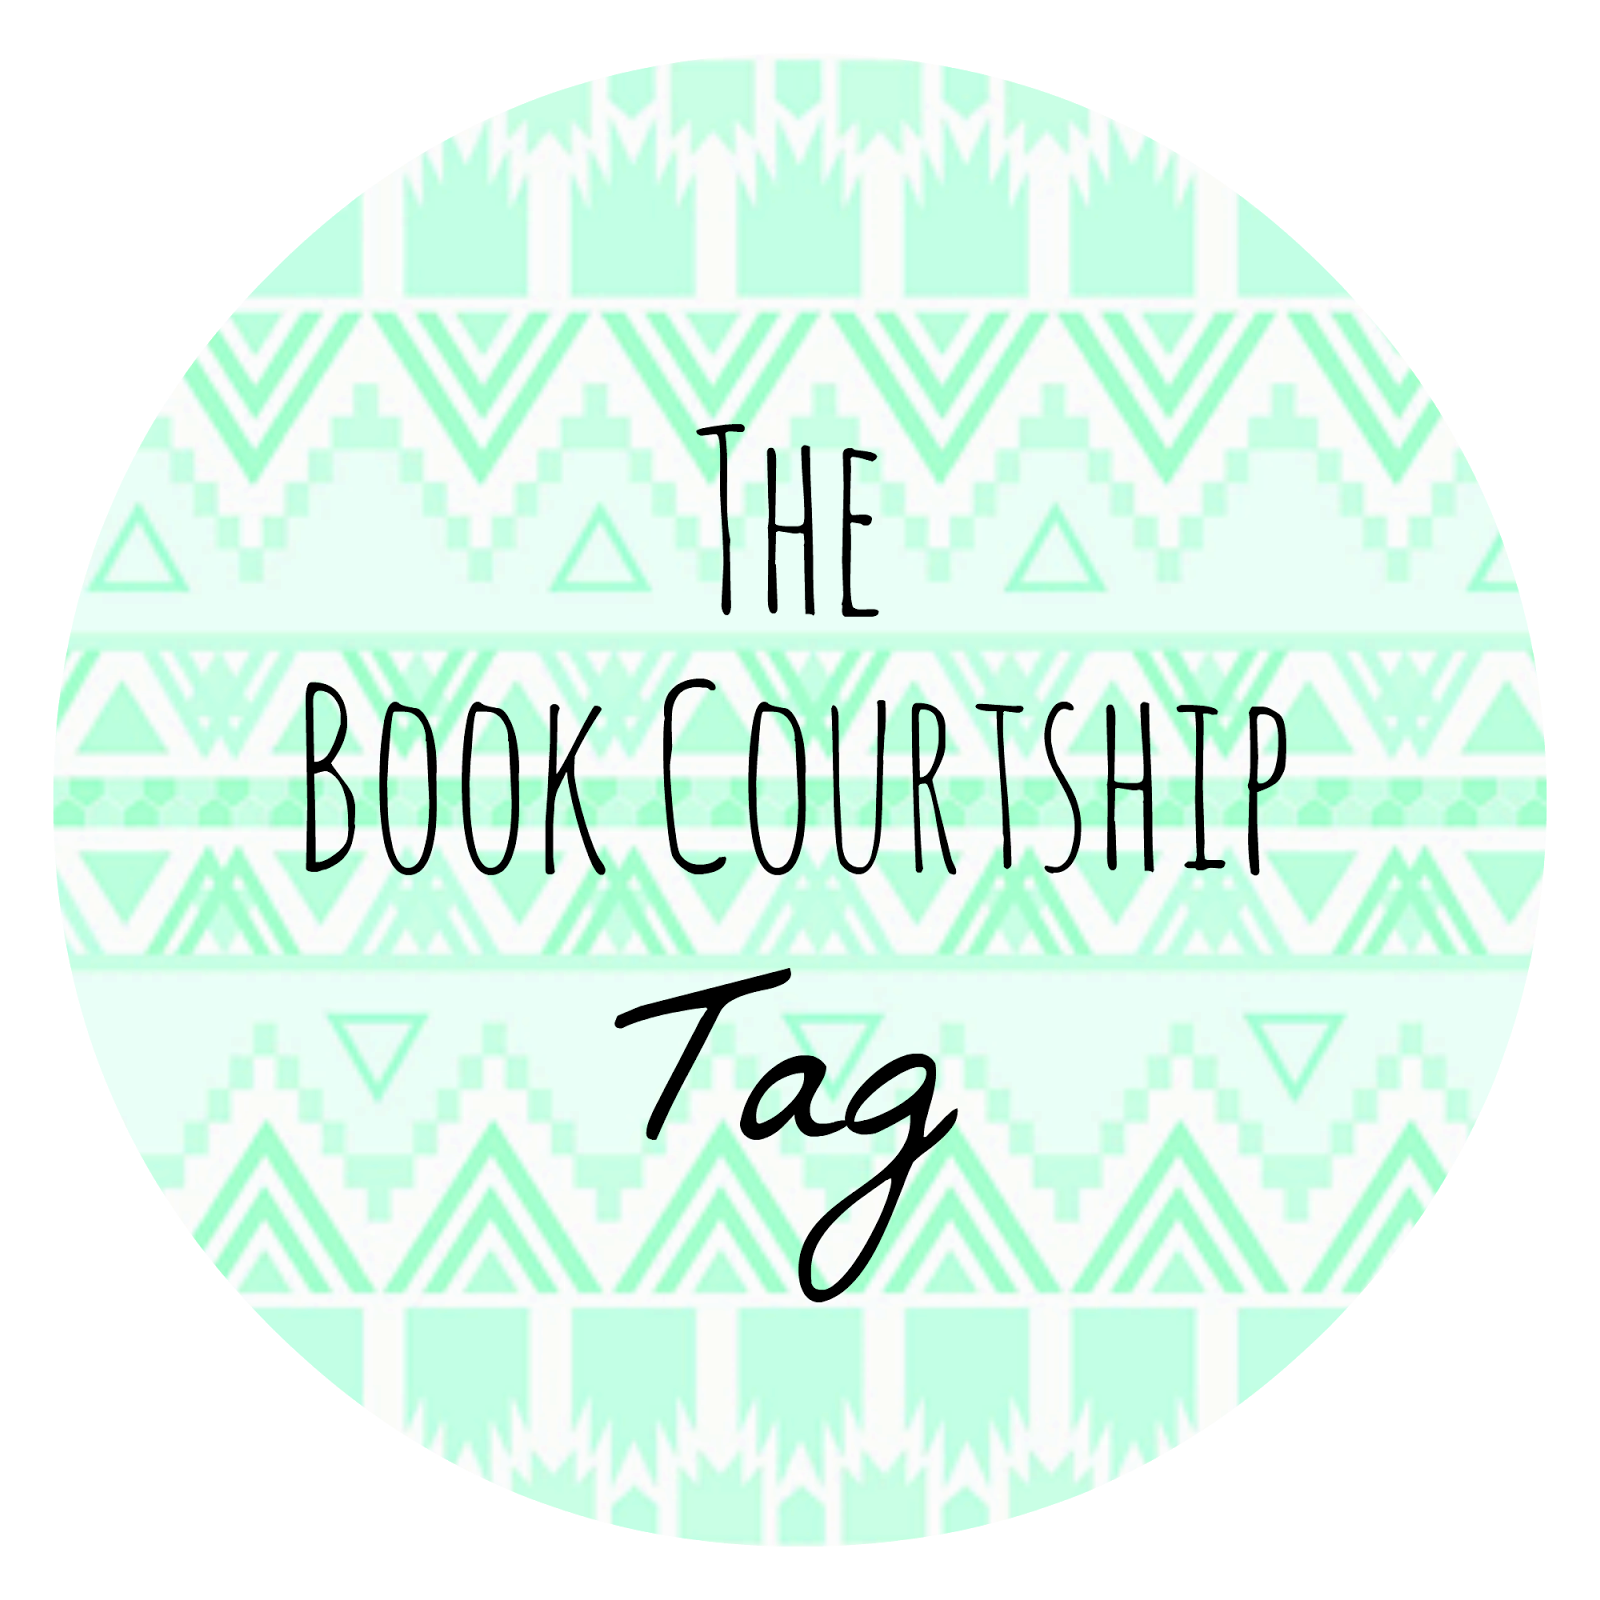 https://josiethebookworm.files.wordpress.com/2015/06/the-book-courtship-tag.png%3Fw%3D810